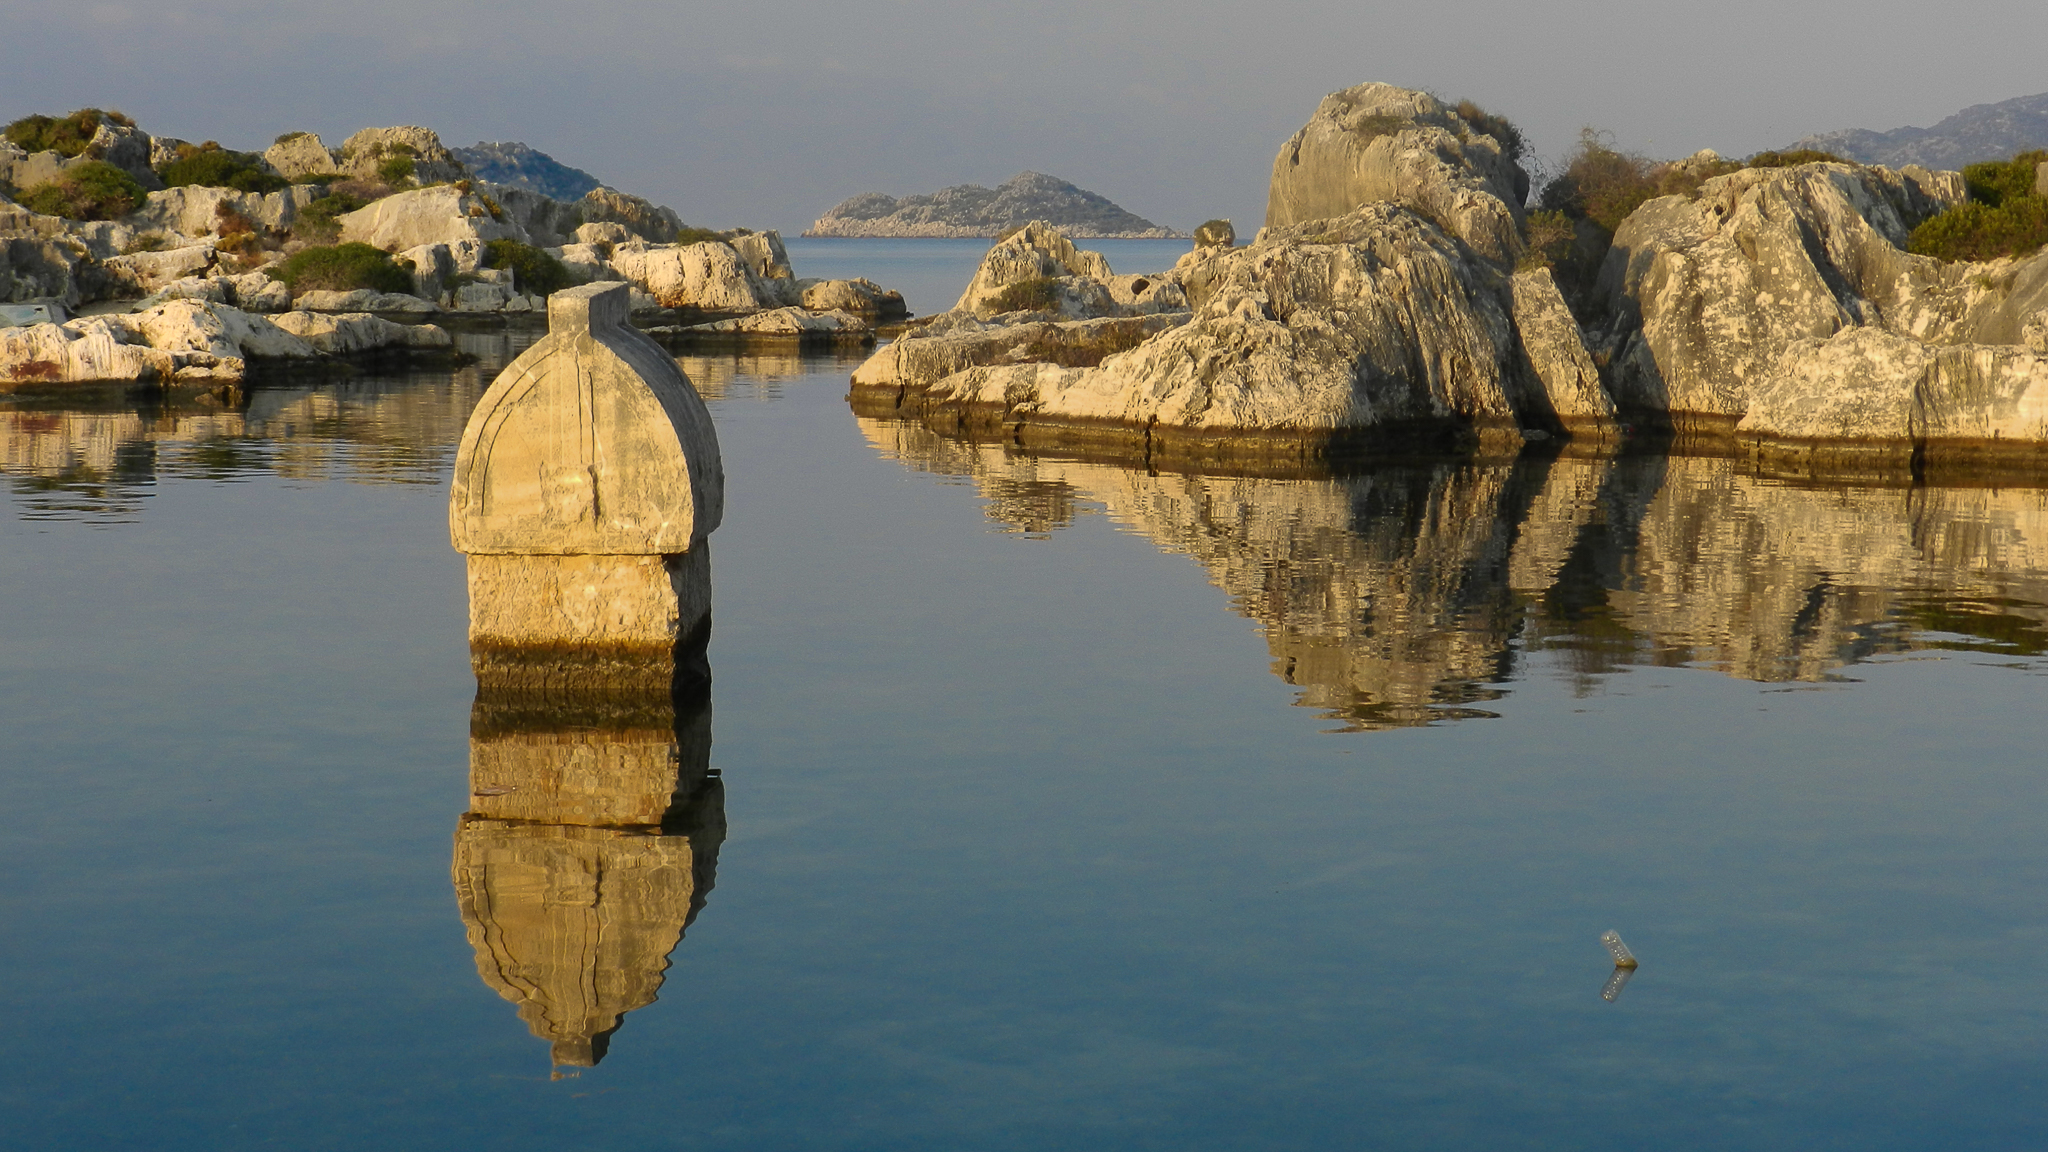 Tomb on the water, Turkey